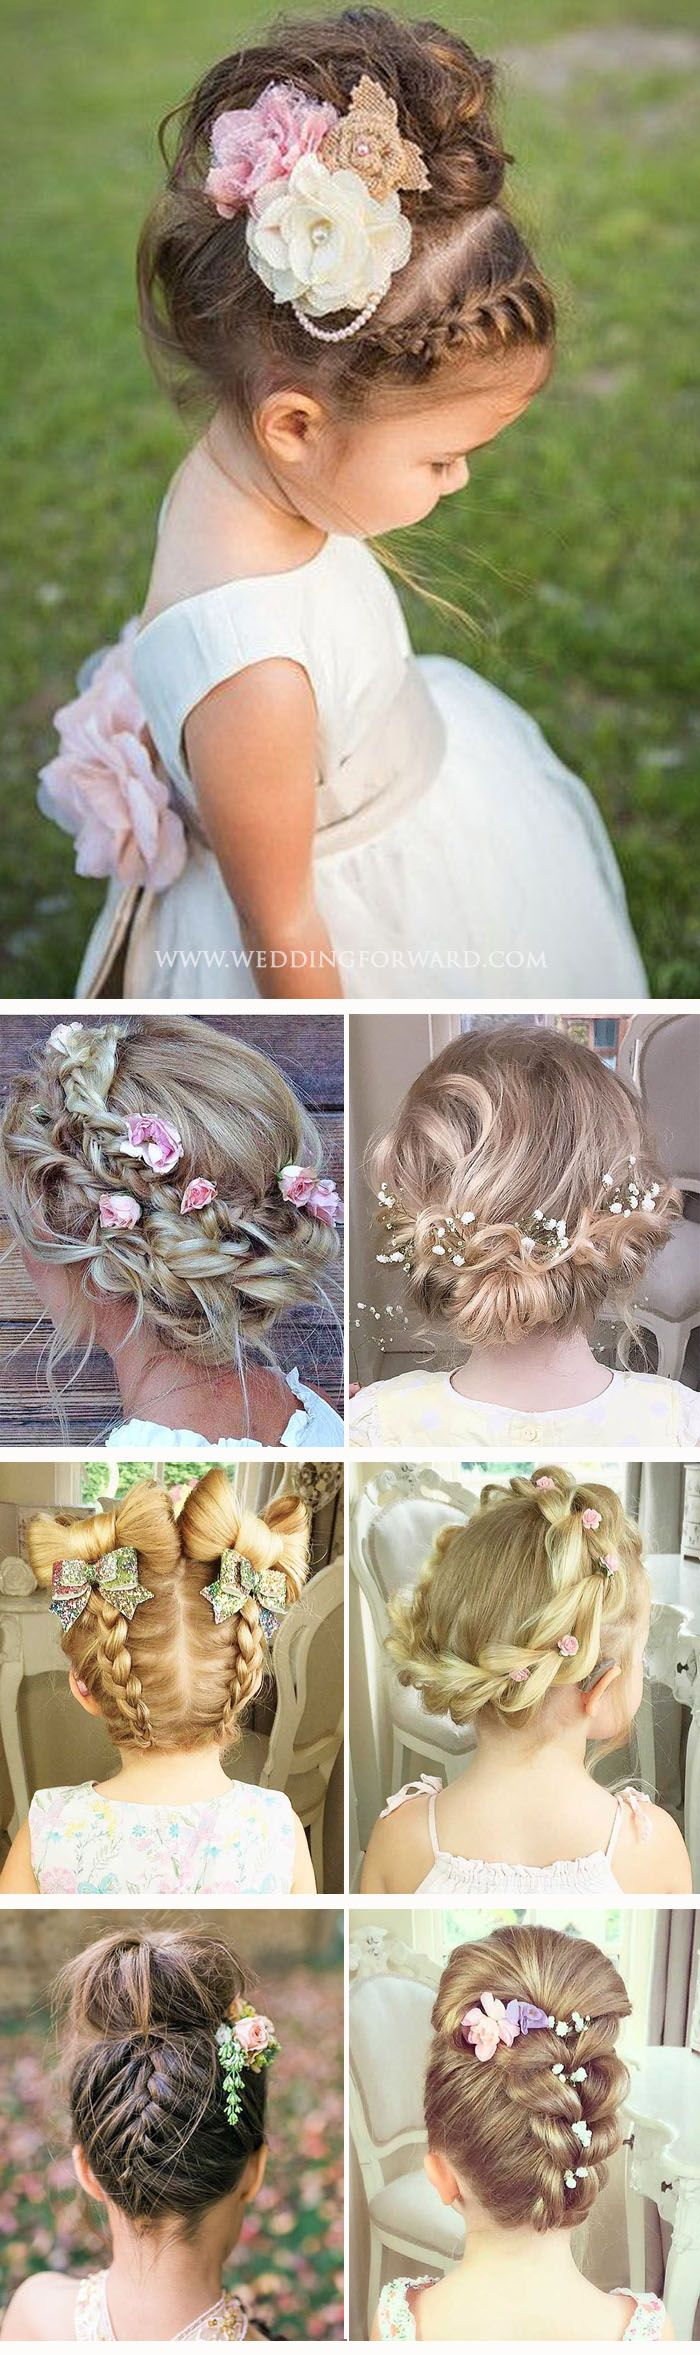 30 Cute Flower Girl Hairstyles ❤ Here you find some simple flower girl hairstyles and more complex which was made by a professionals. See more: http://www.weddingforward.com/flower-girl-hairstyles/ #wedding #flowergirlhairstyles